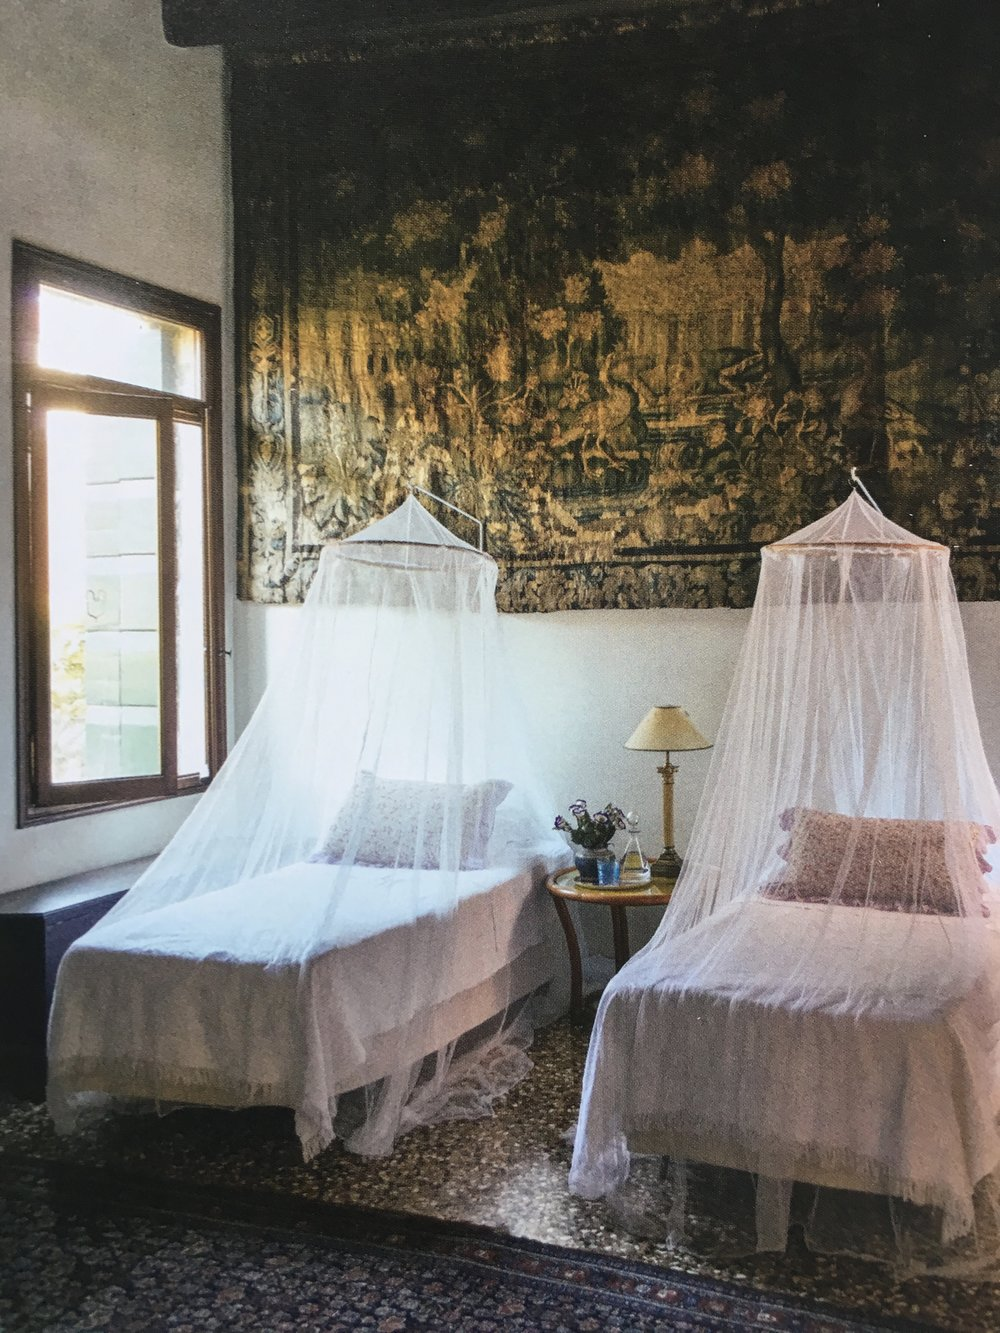 The  home of Jane Da Mosto as featured in The Authentics by Melanie Acevedo and Dara Caponigro